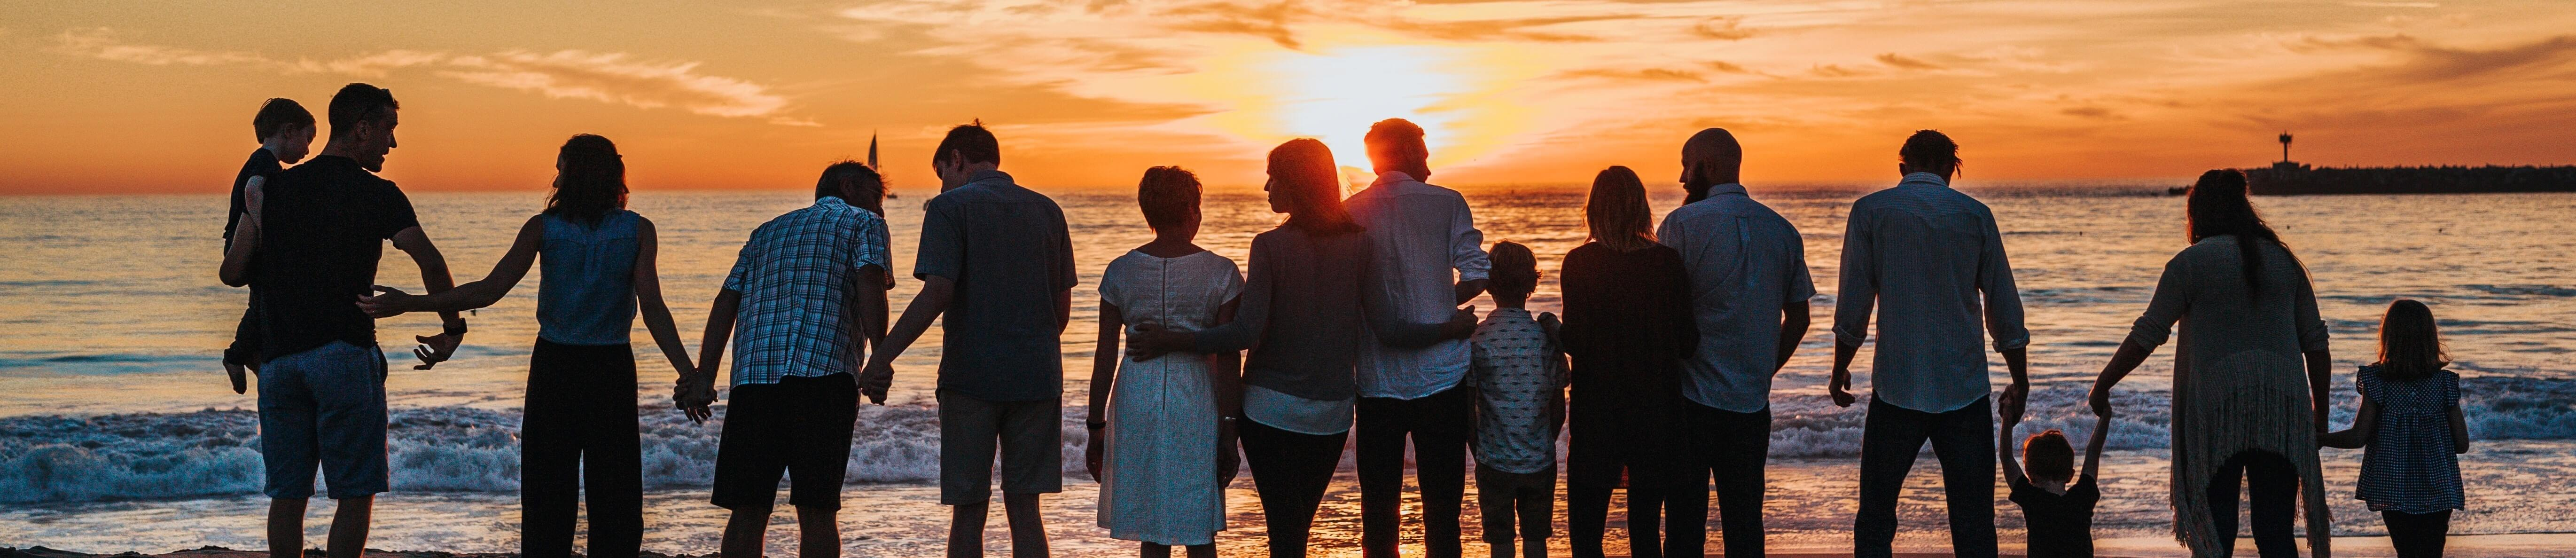 Family sunset cropped